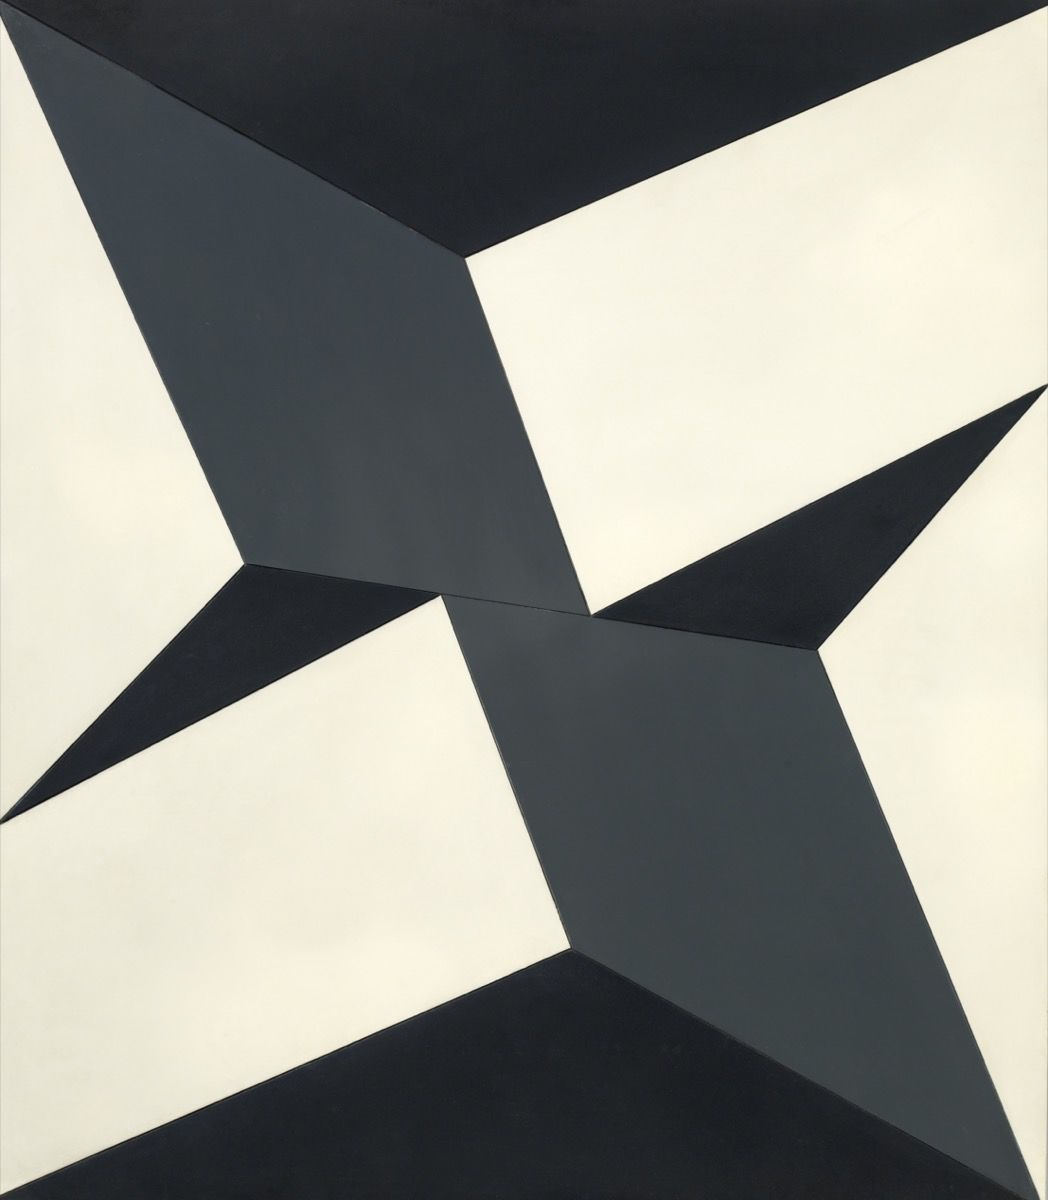 "Lygia Clark, Planes on a Modulated Surface No. 5 (Planos em superfície modulada no. 5), 1957. © ""The World of Lygia Clark"" Cultural Association. Courtesy of The Museum of Fine Arts, Houston and The Adolpho Leirner Collection of Brazilian Constructive Art."